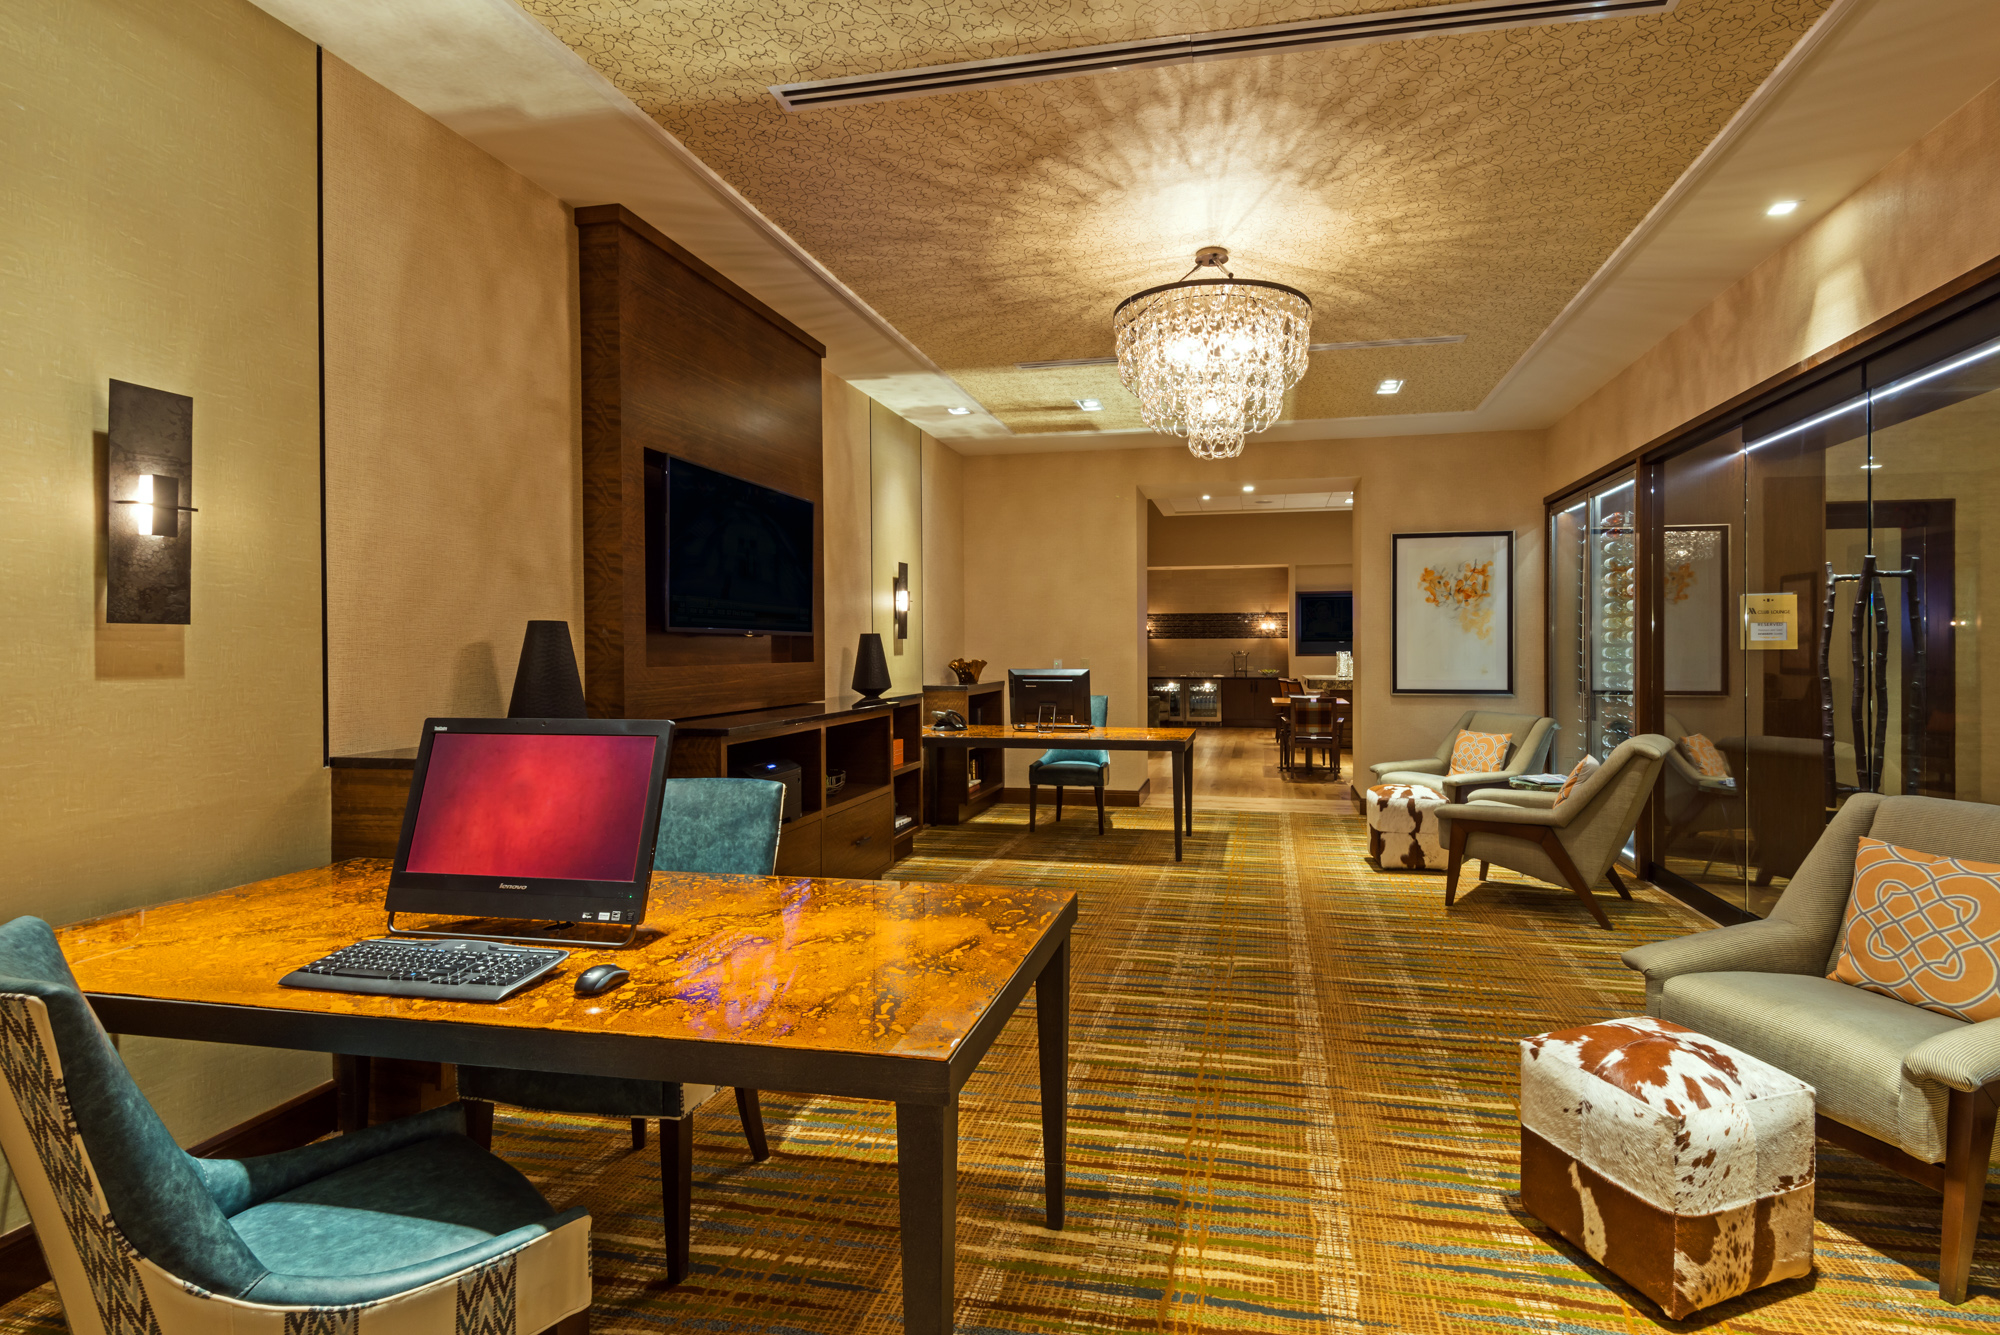 Denver Marriott Westminster image 11